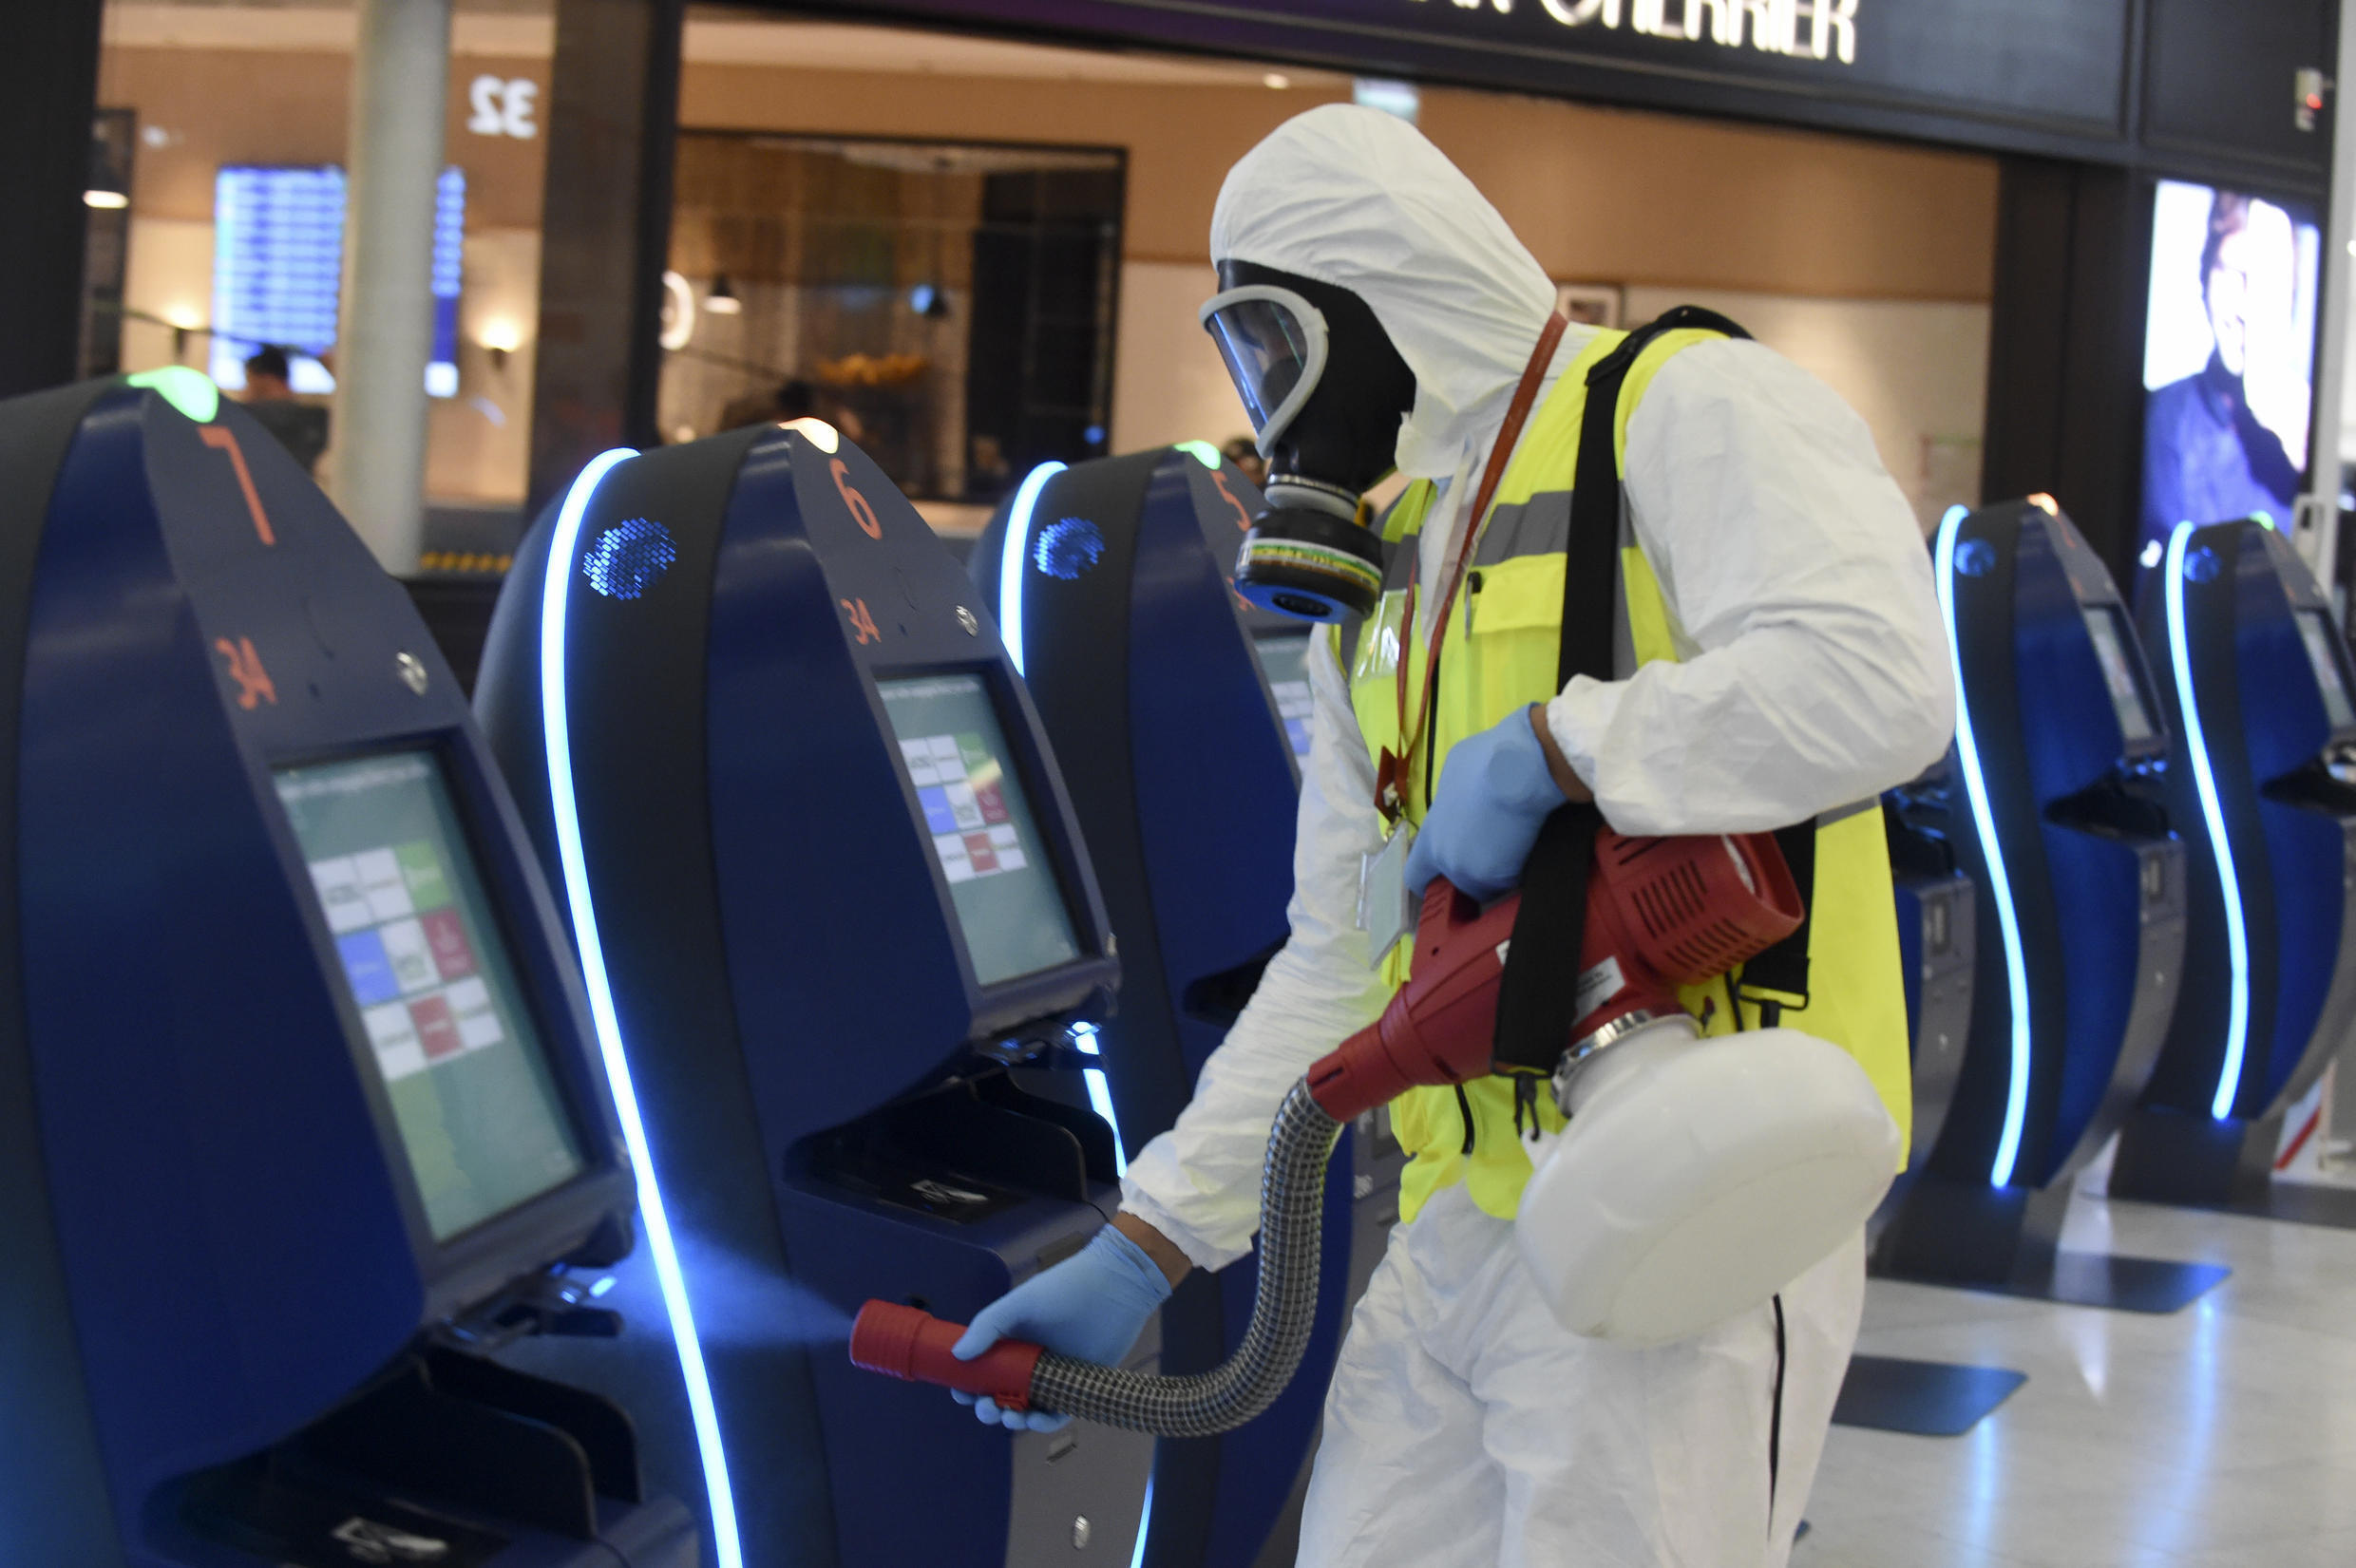 An operator disinfects self-service check-in kiosks at Orly 3 terminal's departure hall on the day of the re-opening of Paris' Orly airport on June 26, 2020.